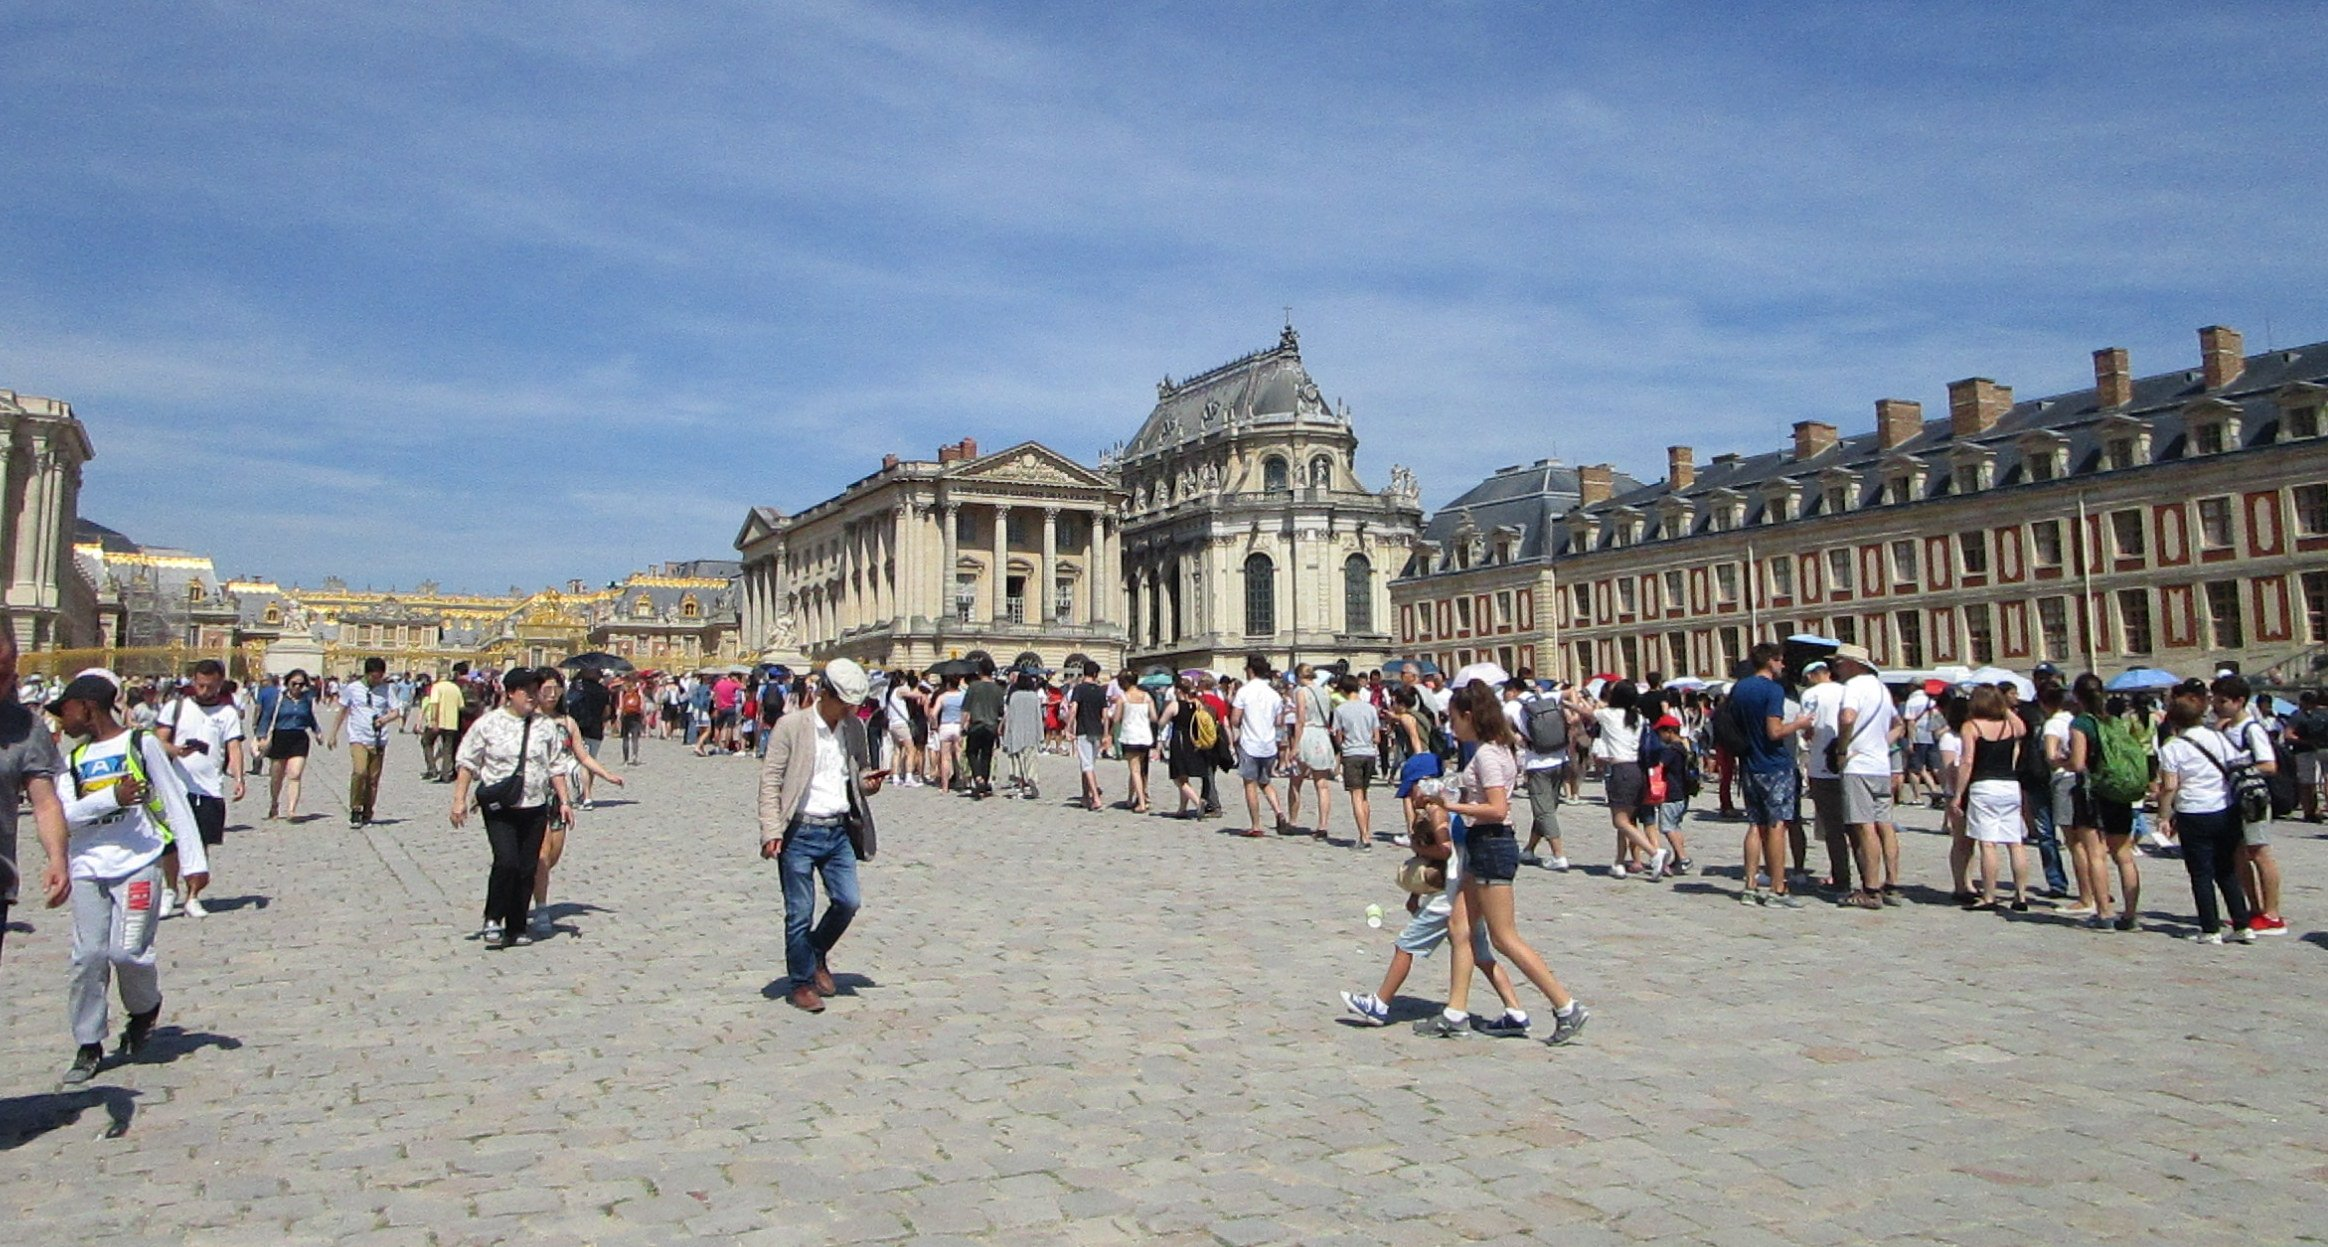 The queue at Versailles Palace